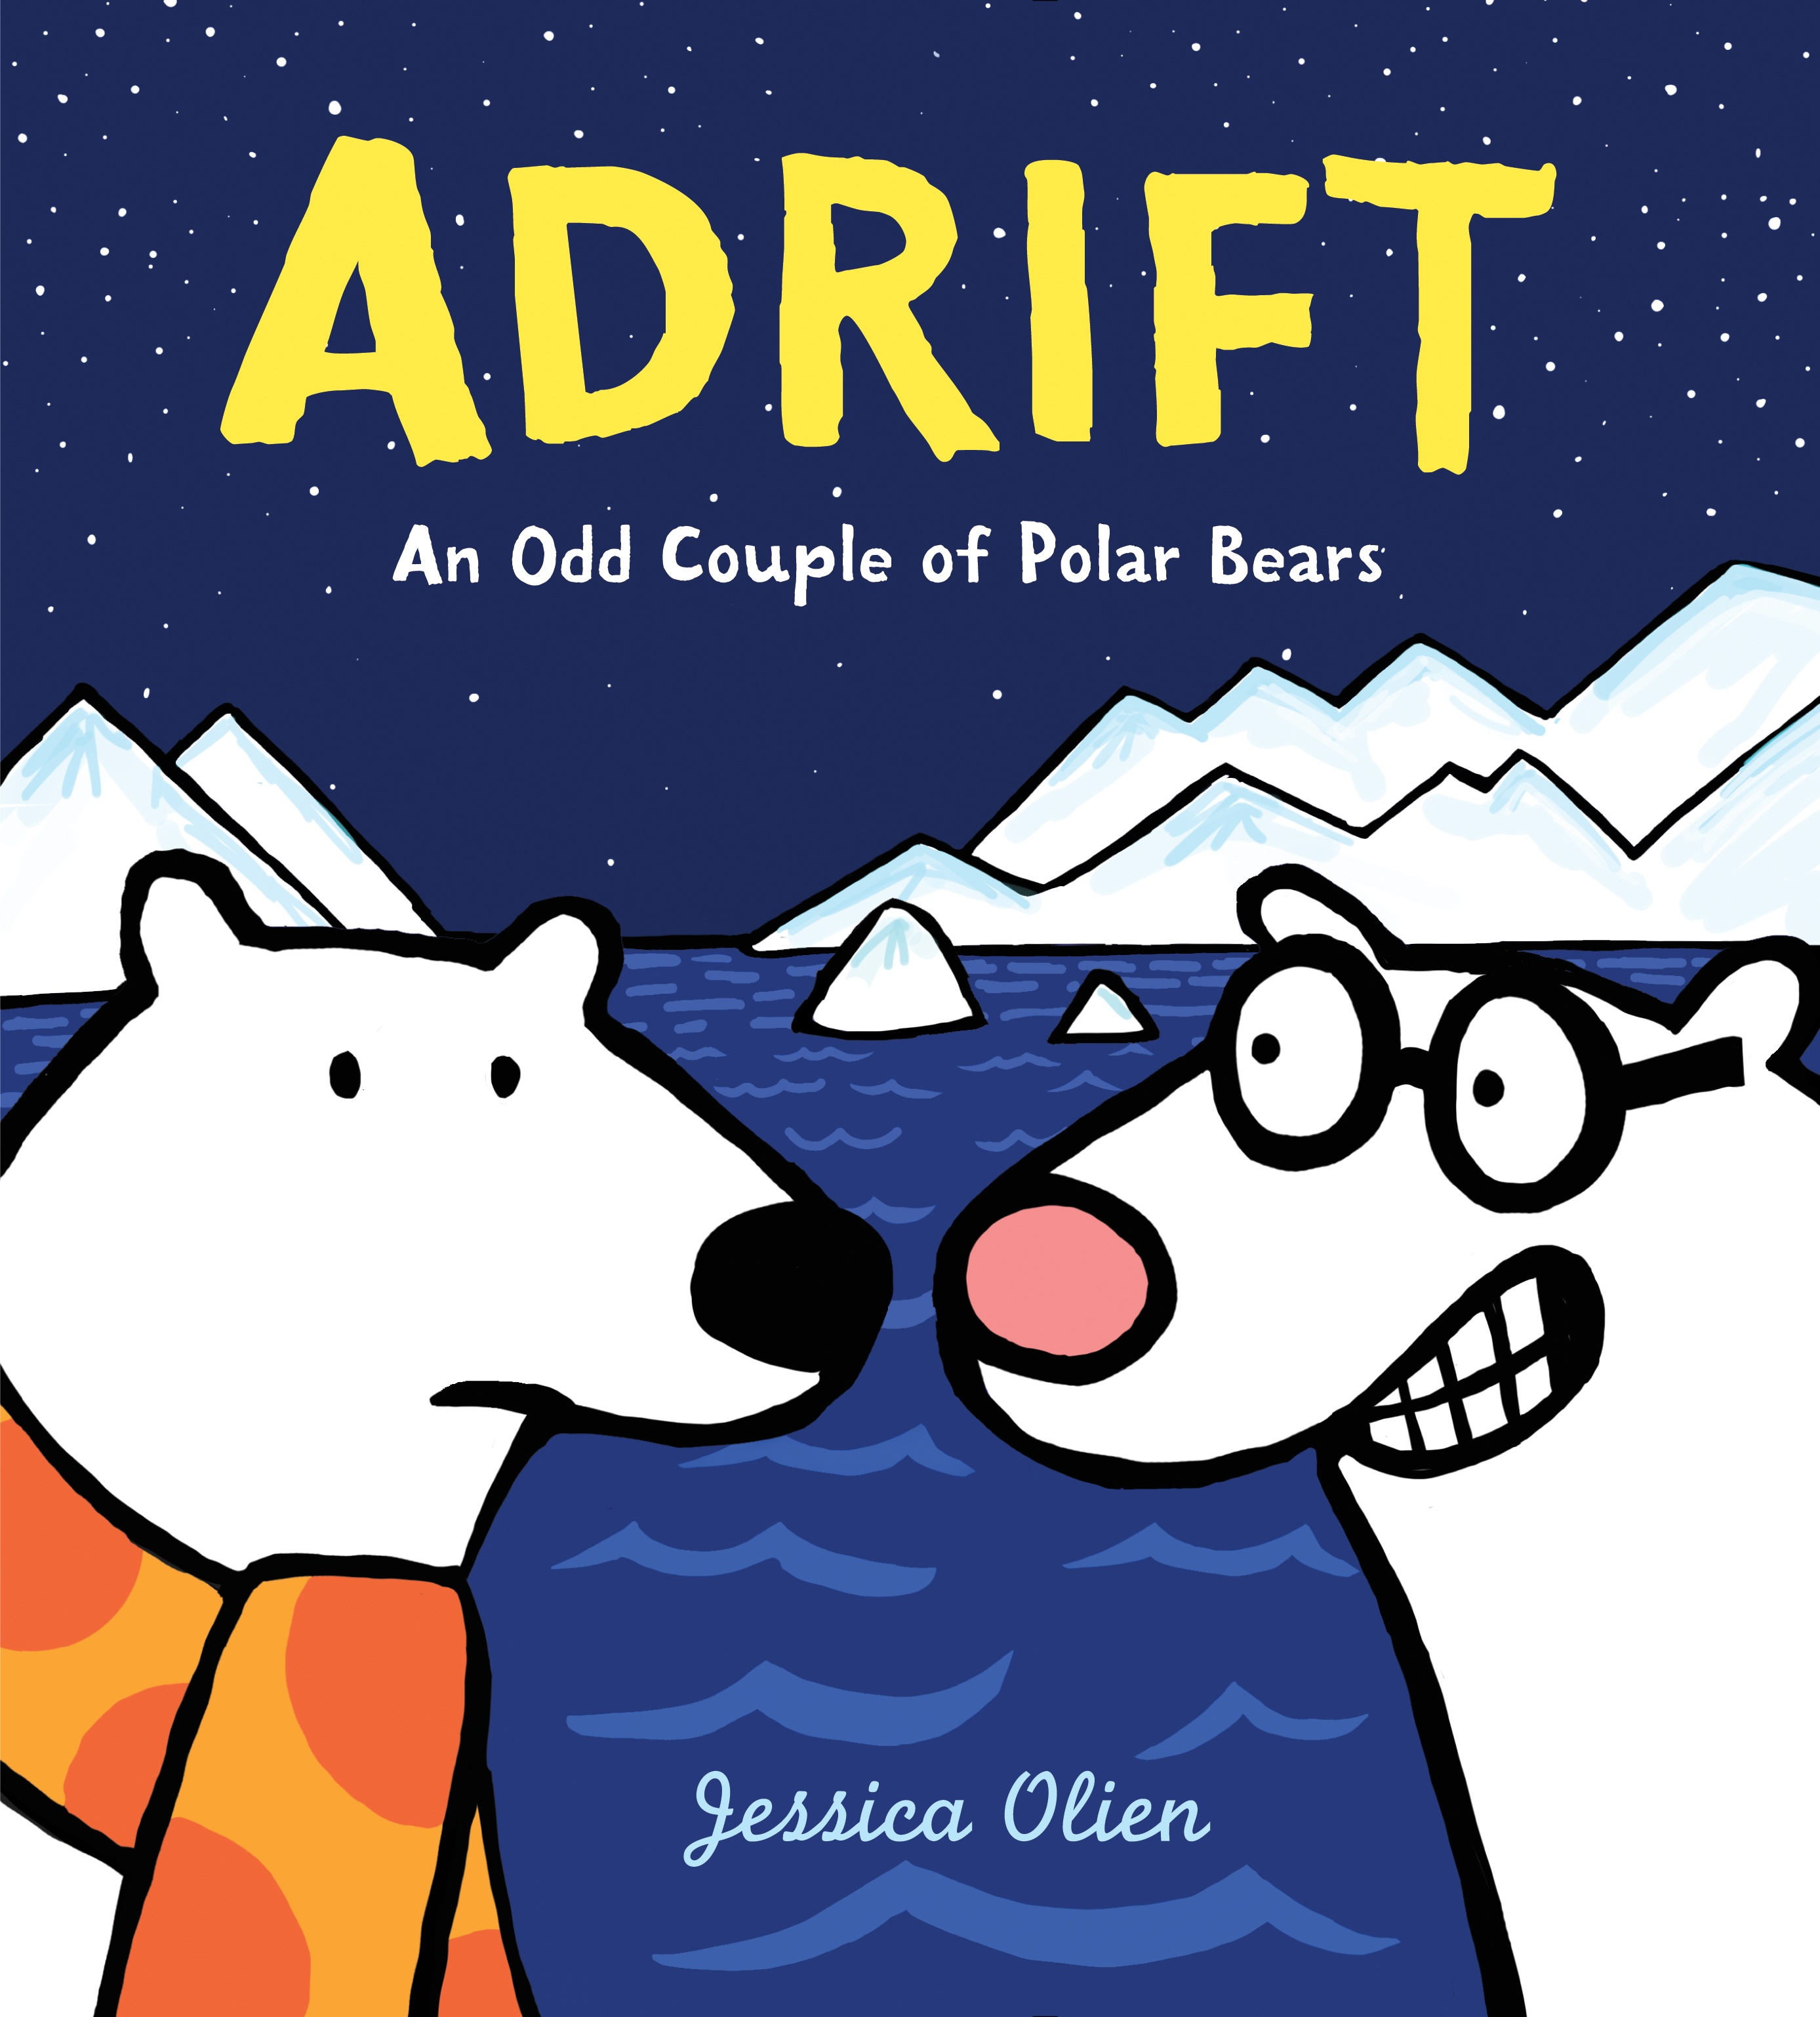 Sunday Story Time with Jessica Olien (author of Adrift)